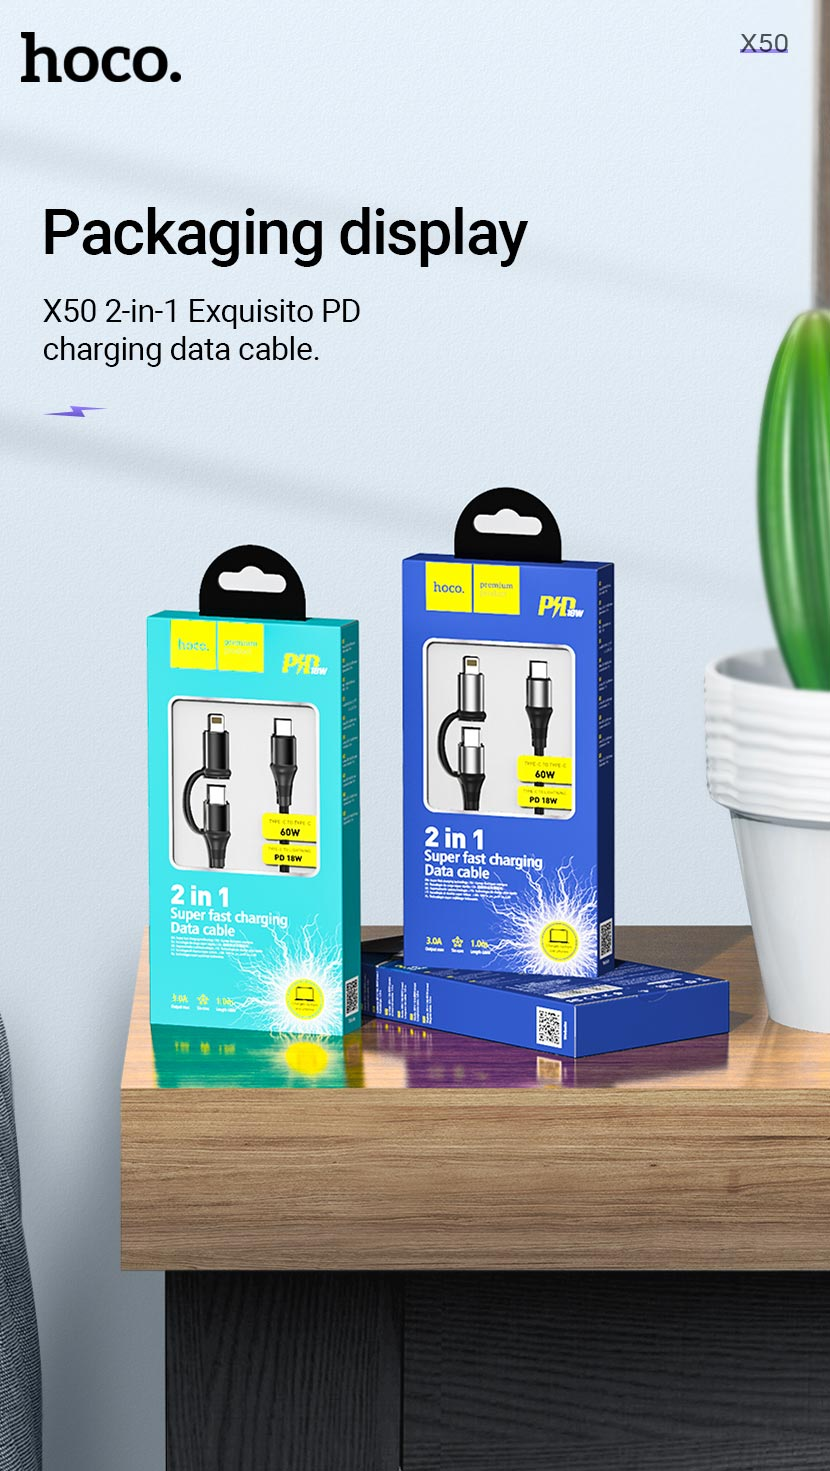 hoco news x50 exquisito charging data cable 2in1 package en